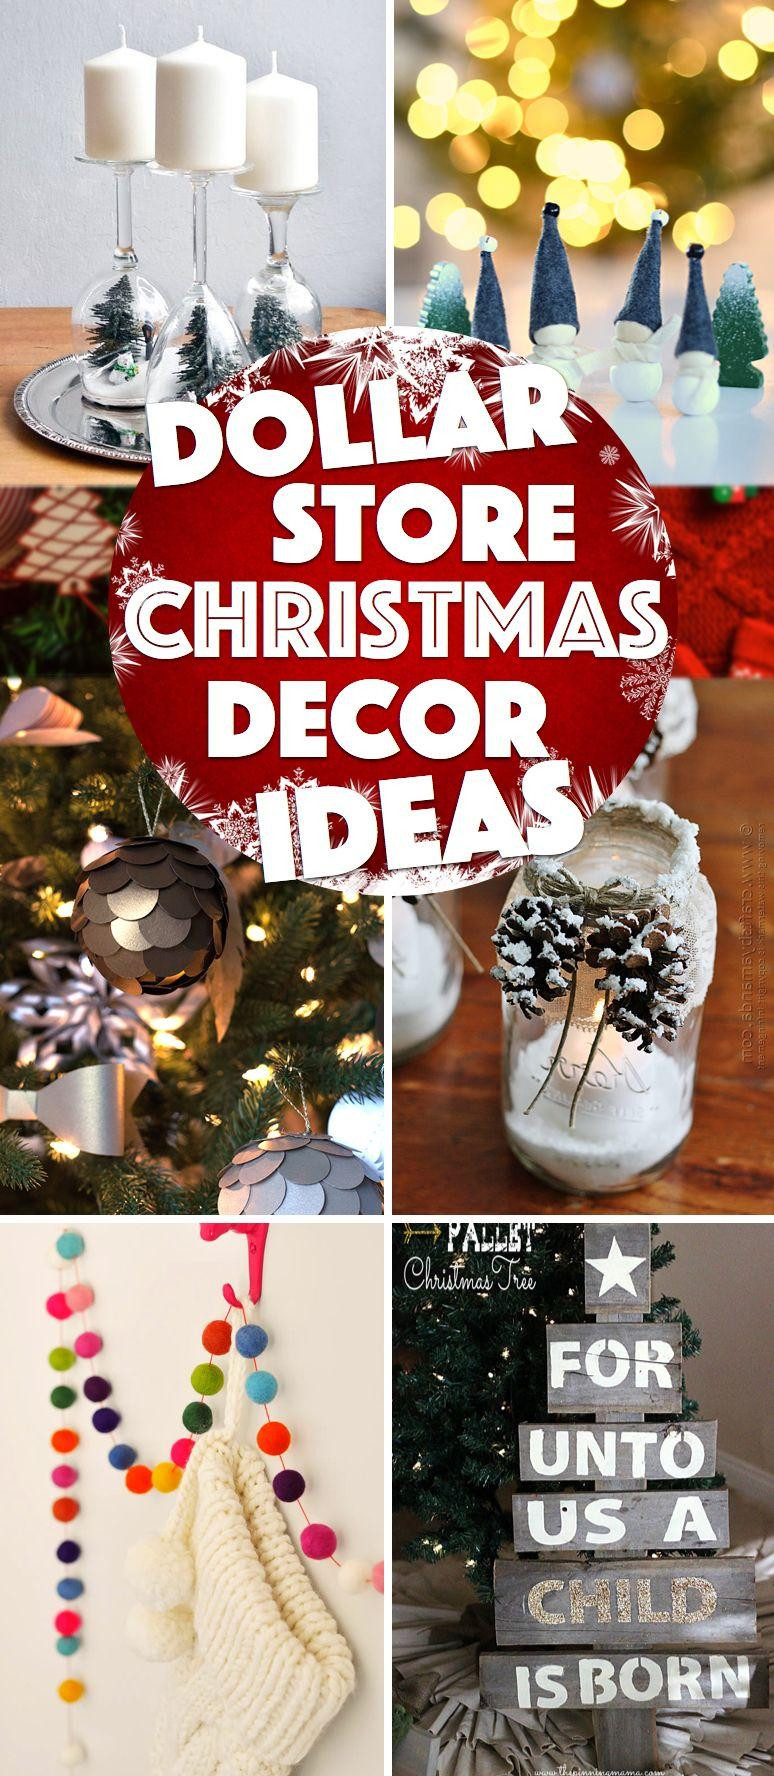 dollar store vases and candlesticks of unique of dollar tree diy room decor pics artsvisuelscaribeens com throughout dollar tree diy room decor luxury 39 oh so gorgeous dollar store diy christmas decor ideas